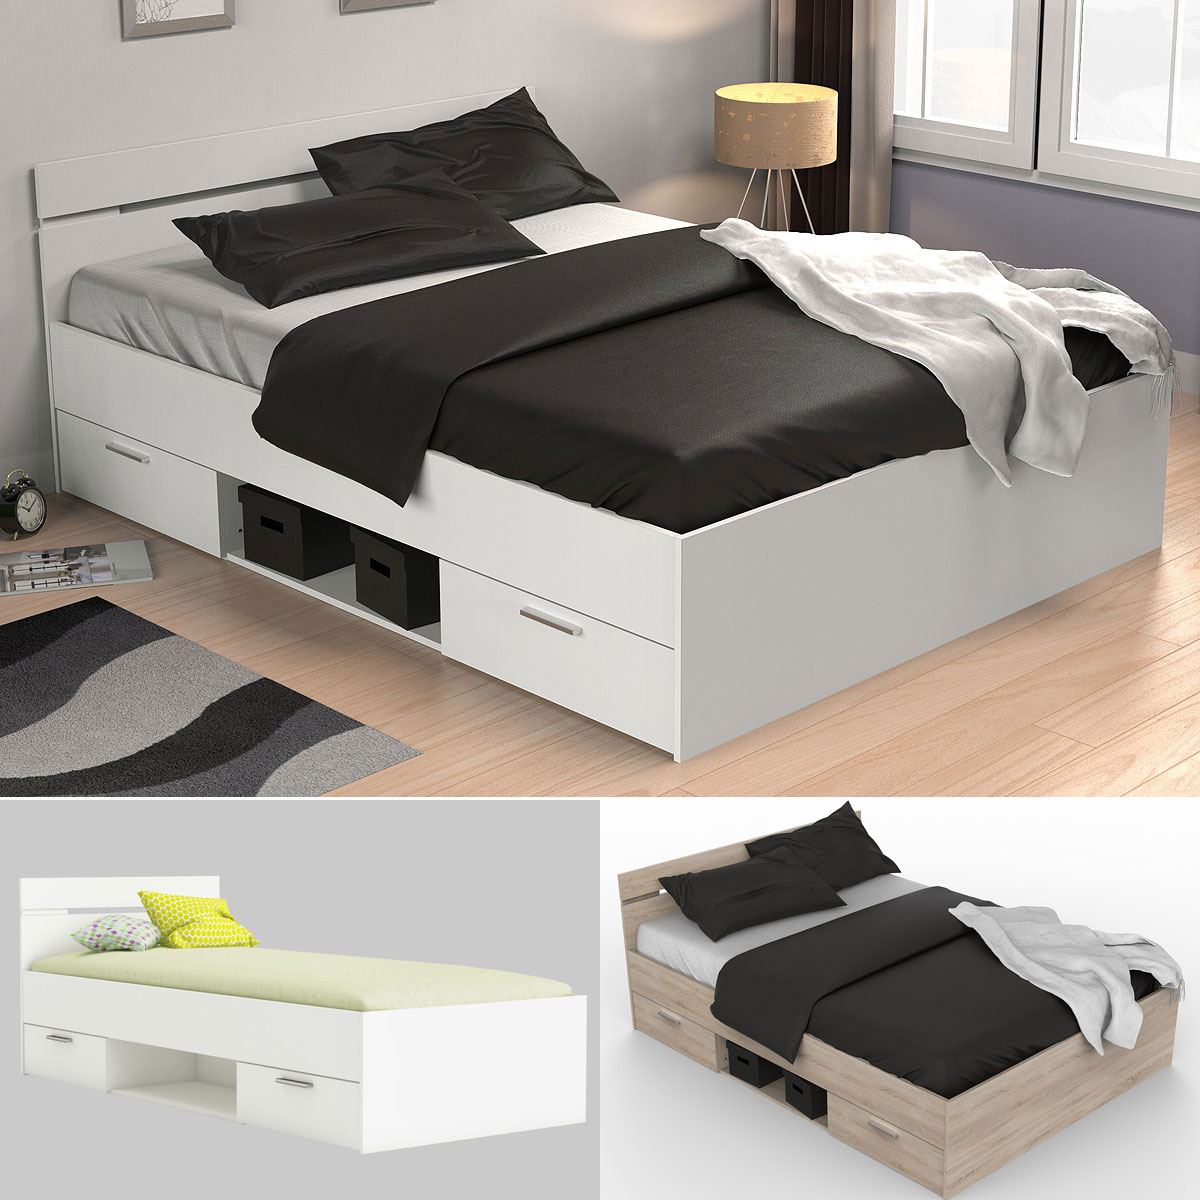 bett michigan jugendbett g stebett mit 2 schubk sten liegefl che 90x200 140x200 eur 89 95. Black Bedroom Furniture Sets. Home Design Ideas